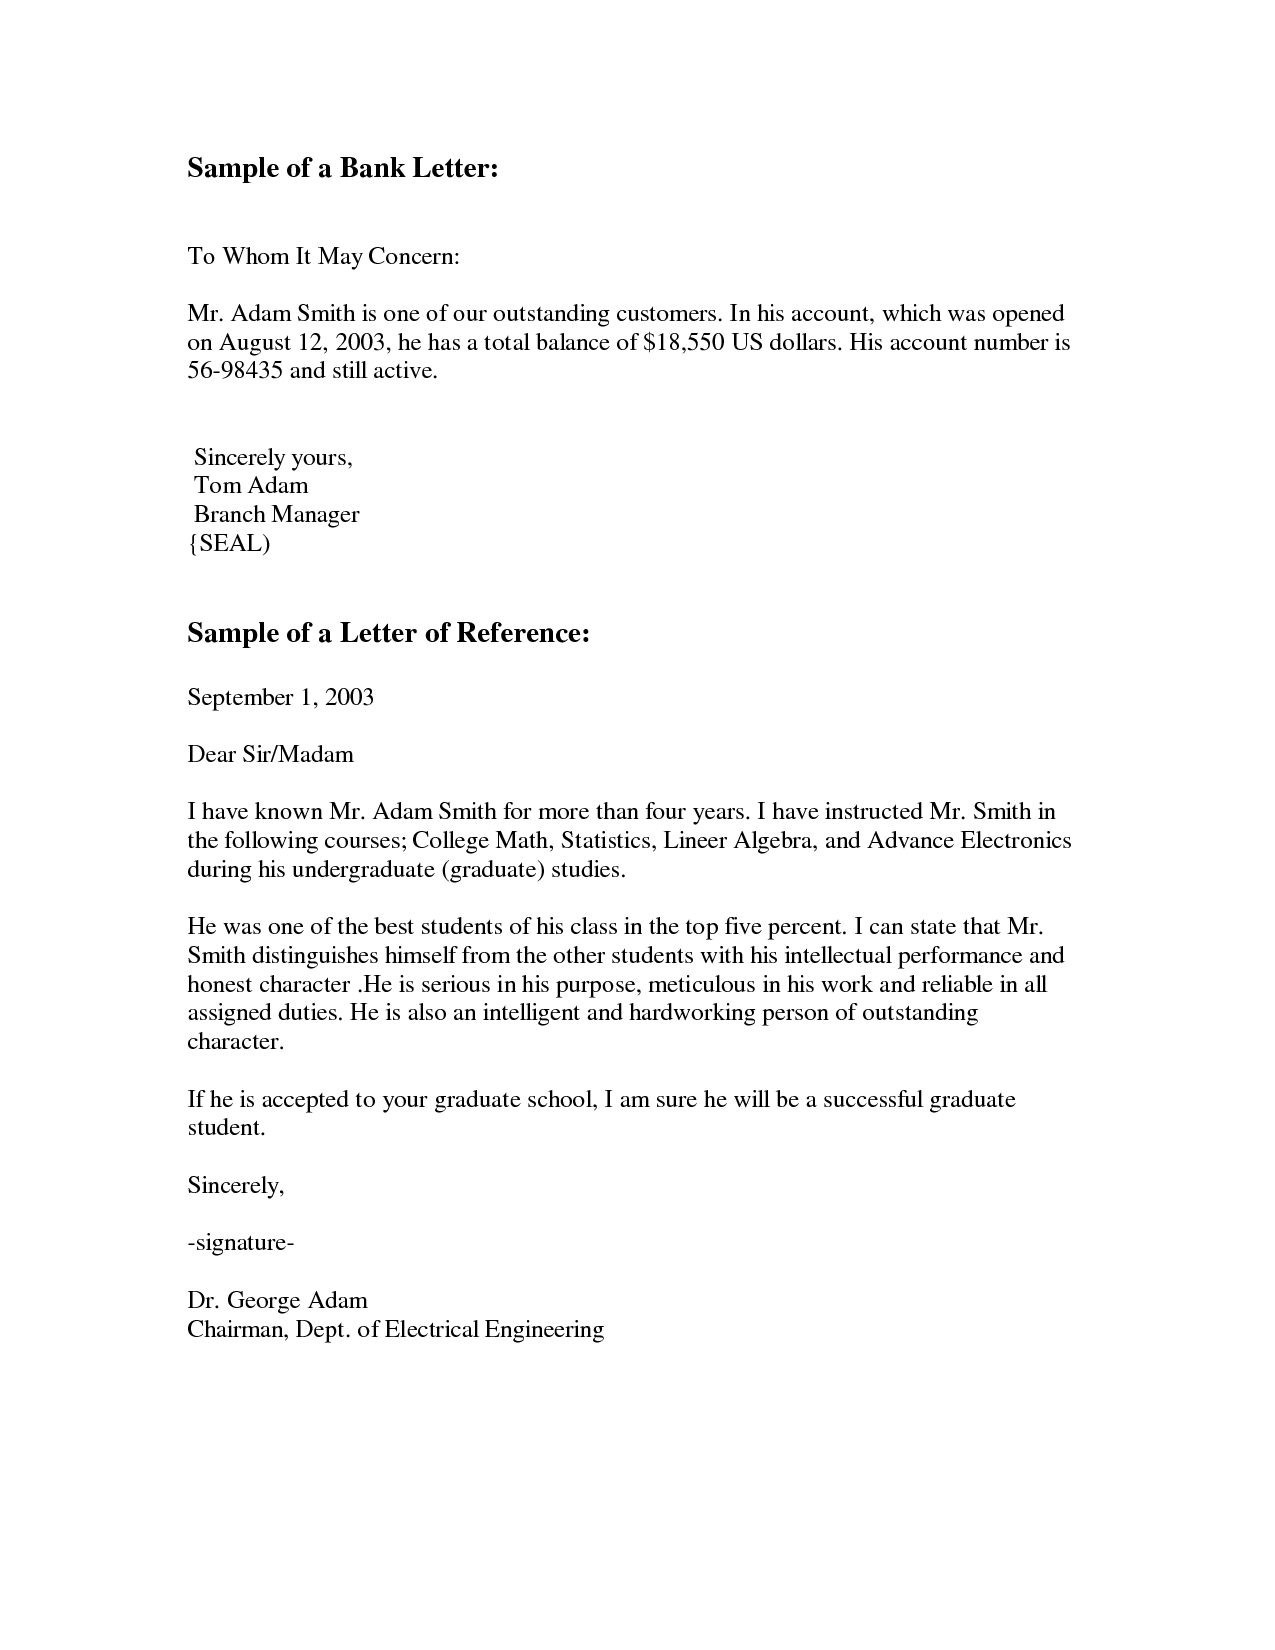 formal letter template Collection-Formal Letter Template Unique bylaws Template 0d Wallpapers 50 ficial Letter format 8-c